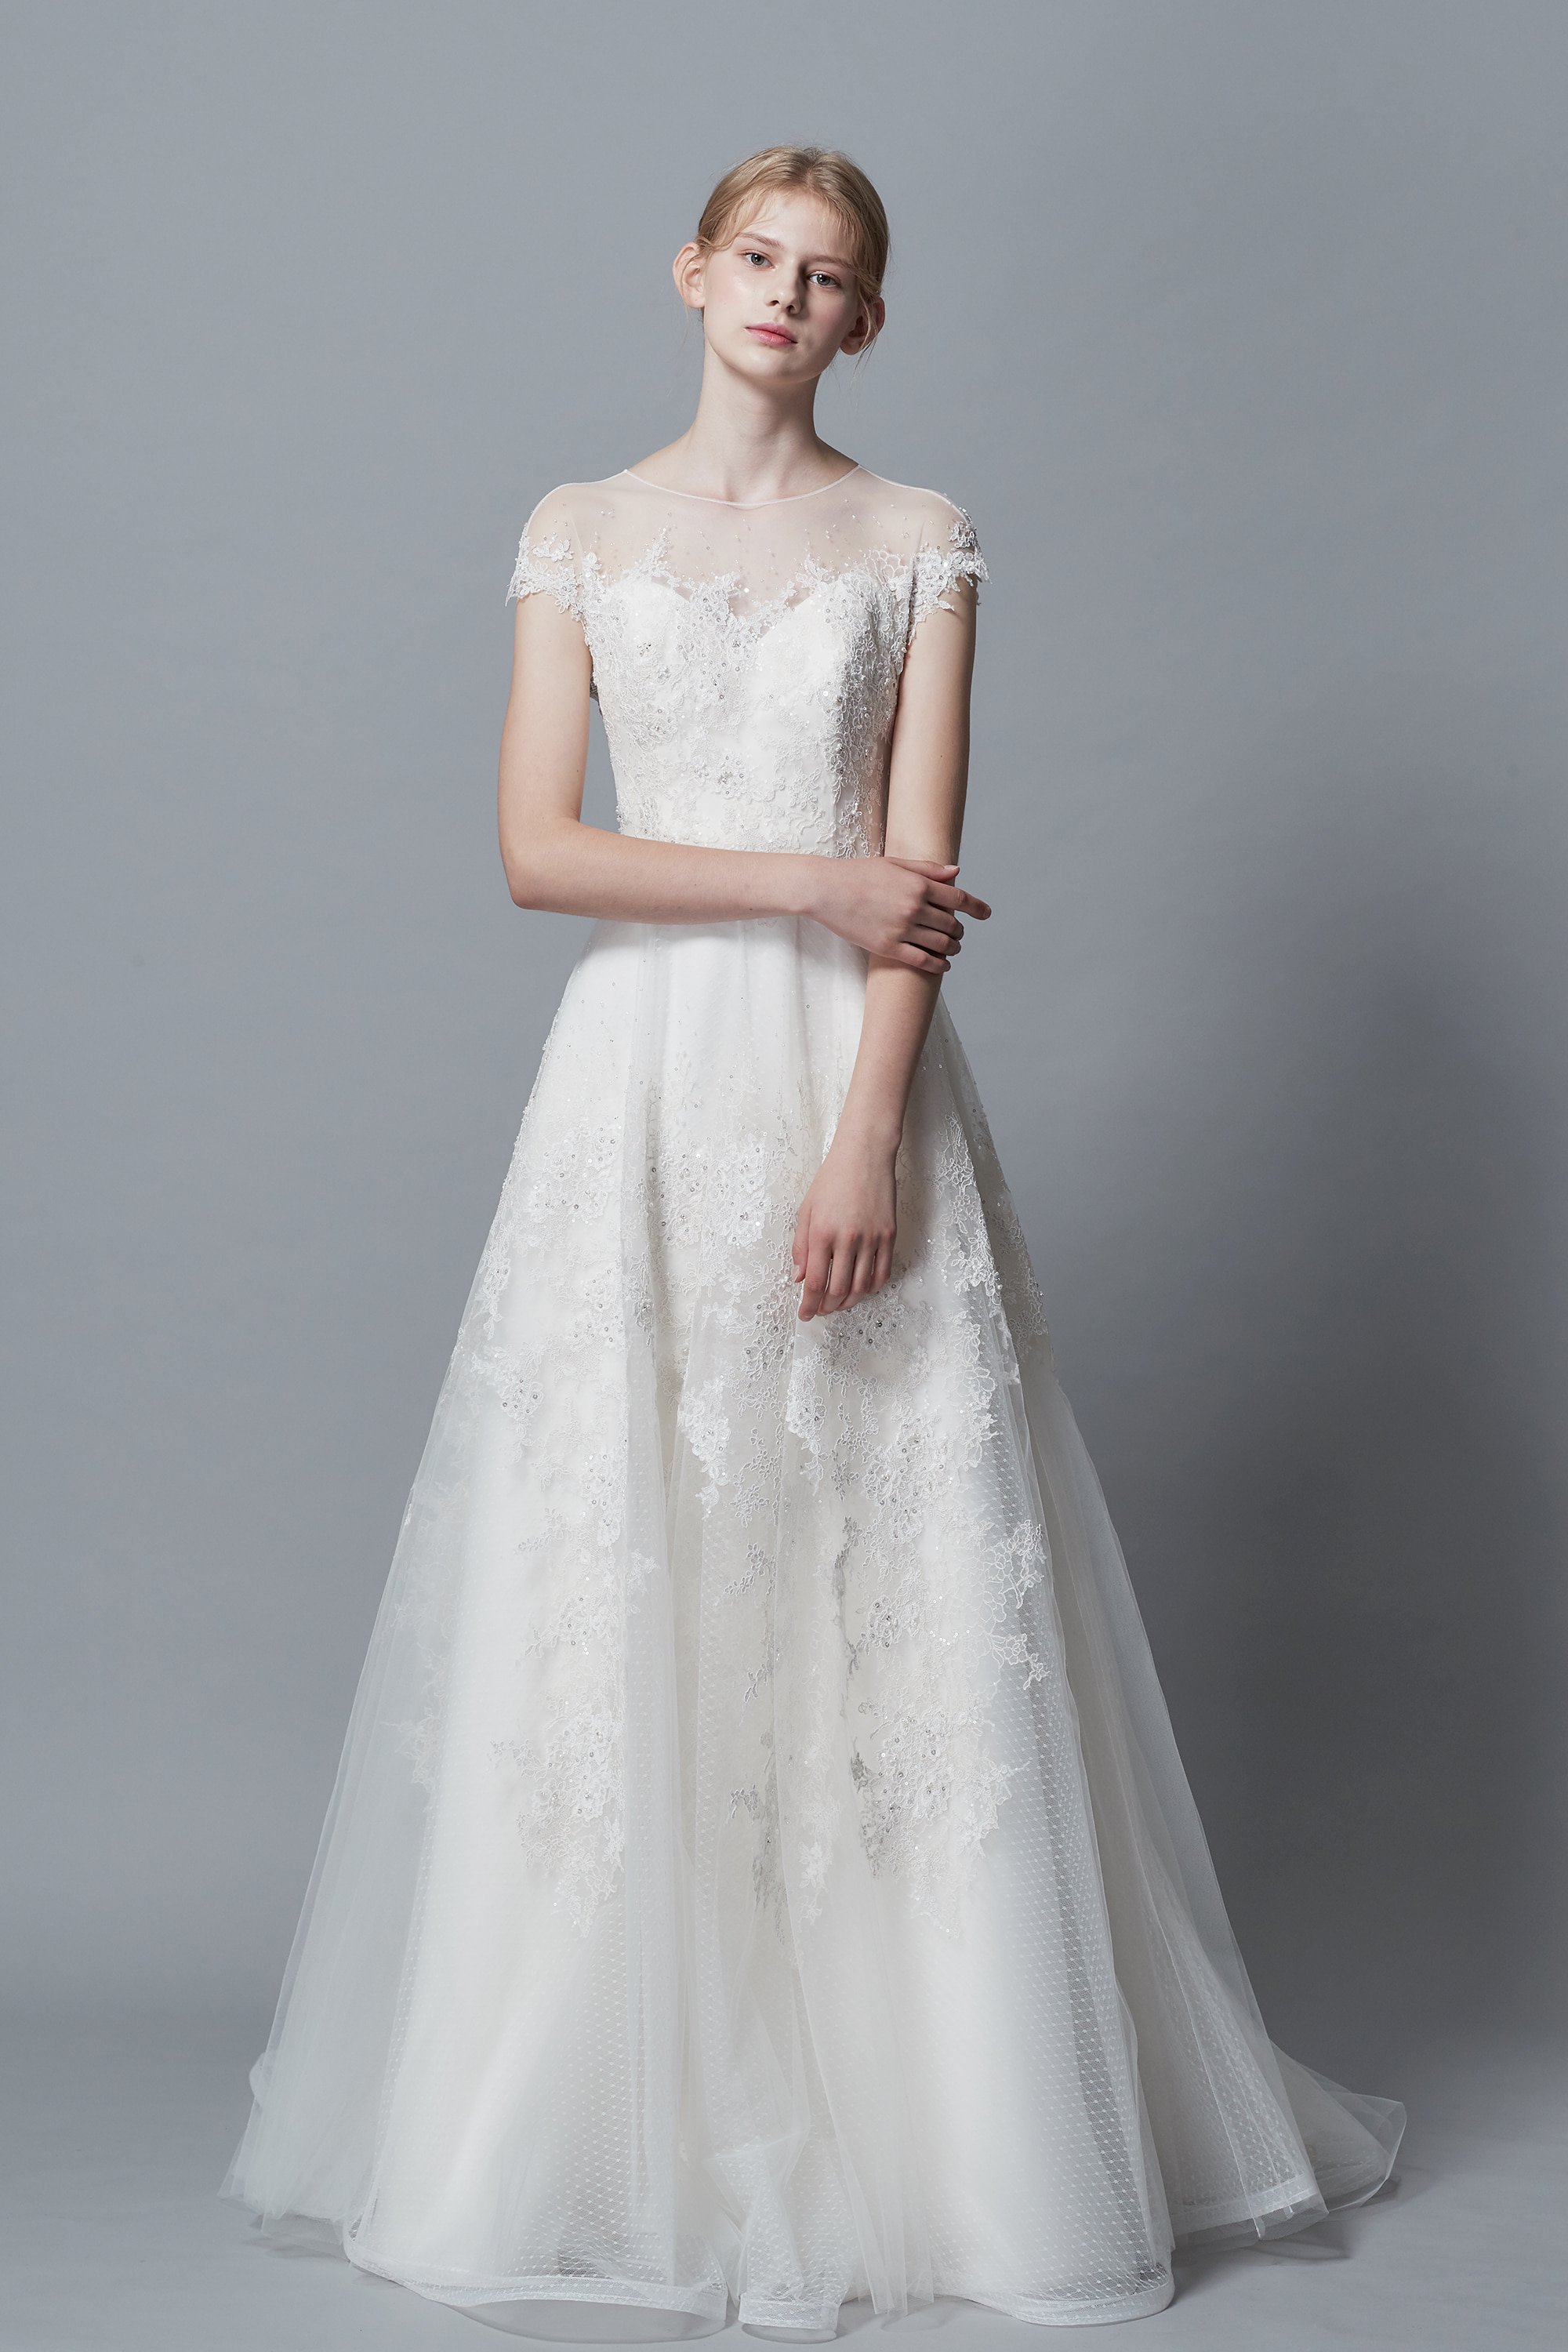 Ciel Blanc, WEDDING DRESS, DRESS,